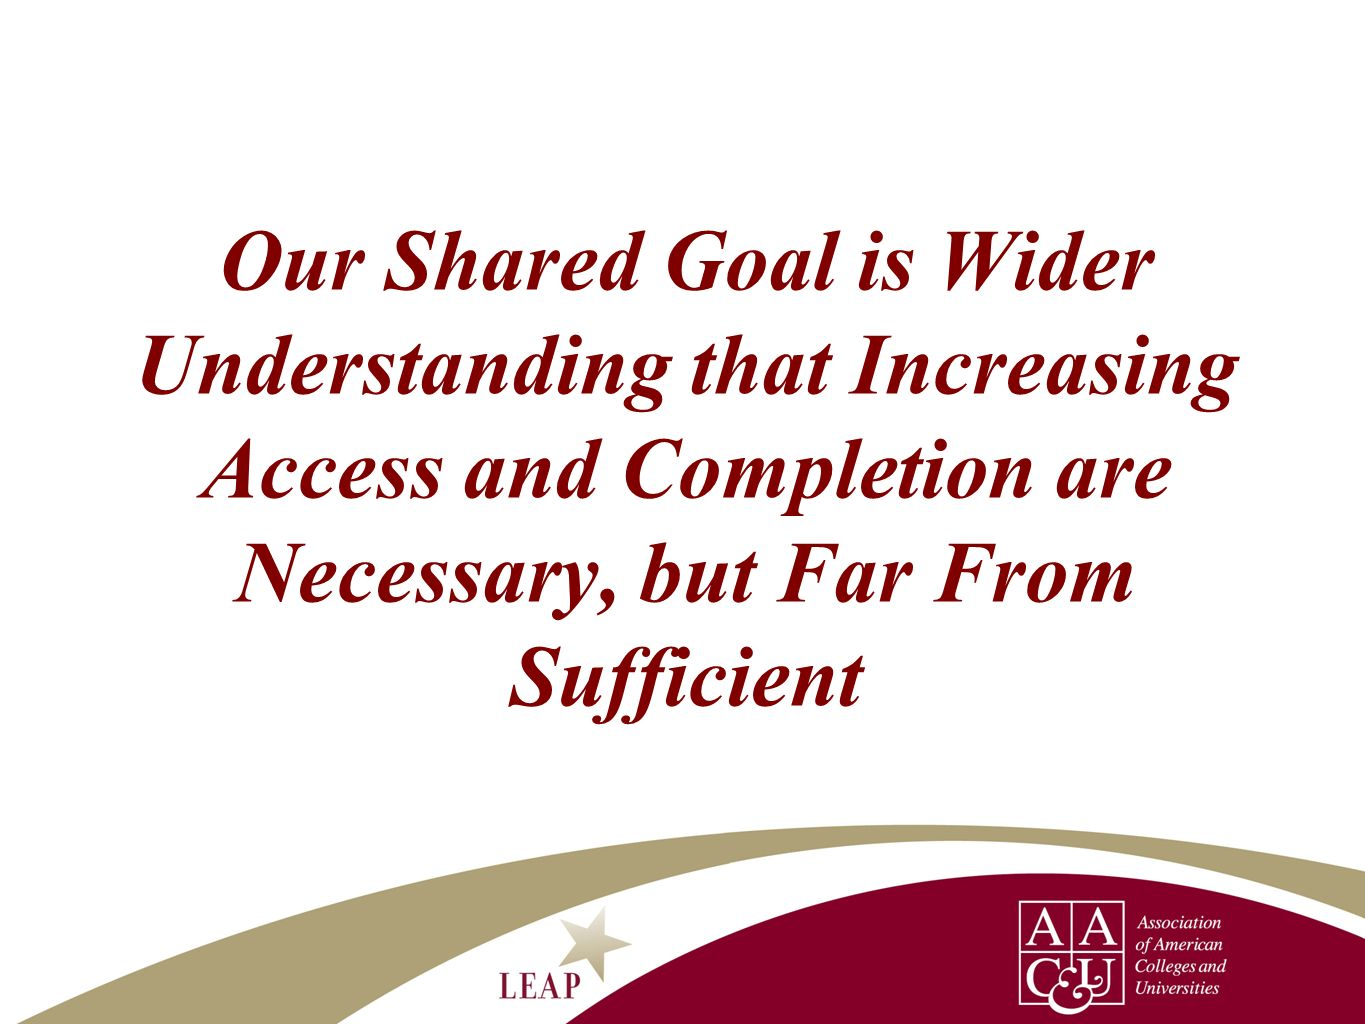 Our Shared Goal is Wider Understanding that Increasing Access and Completion are Necessary, but Far From Sufficient